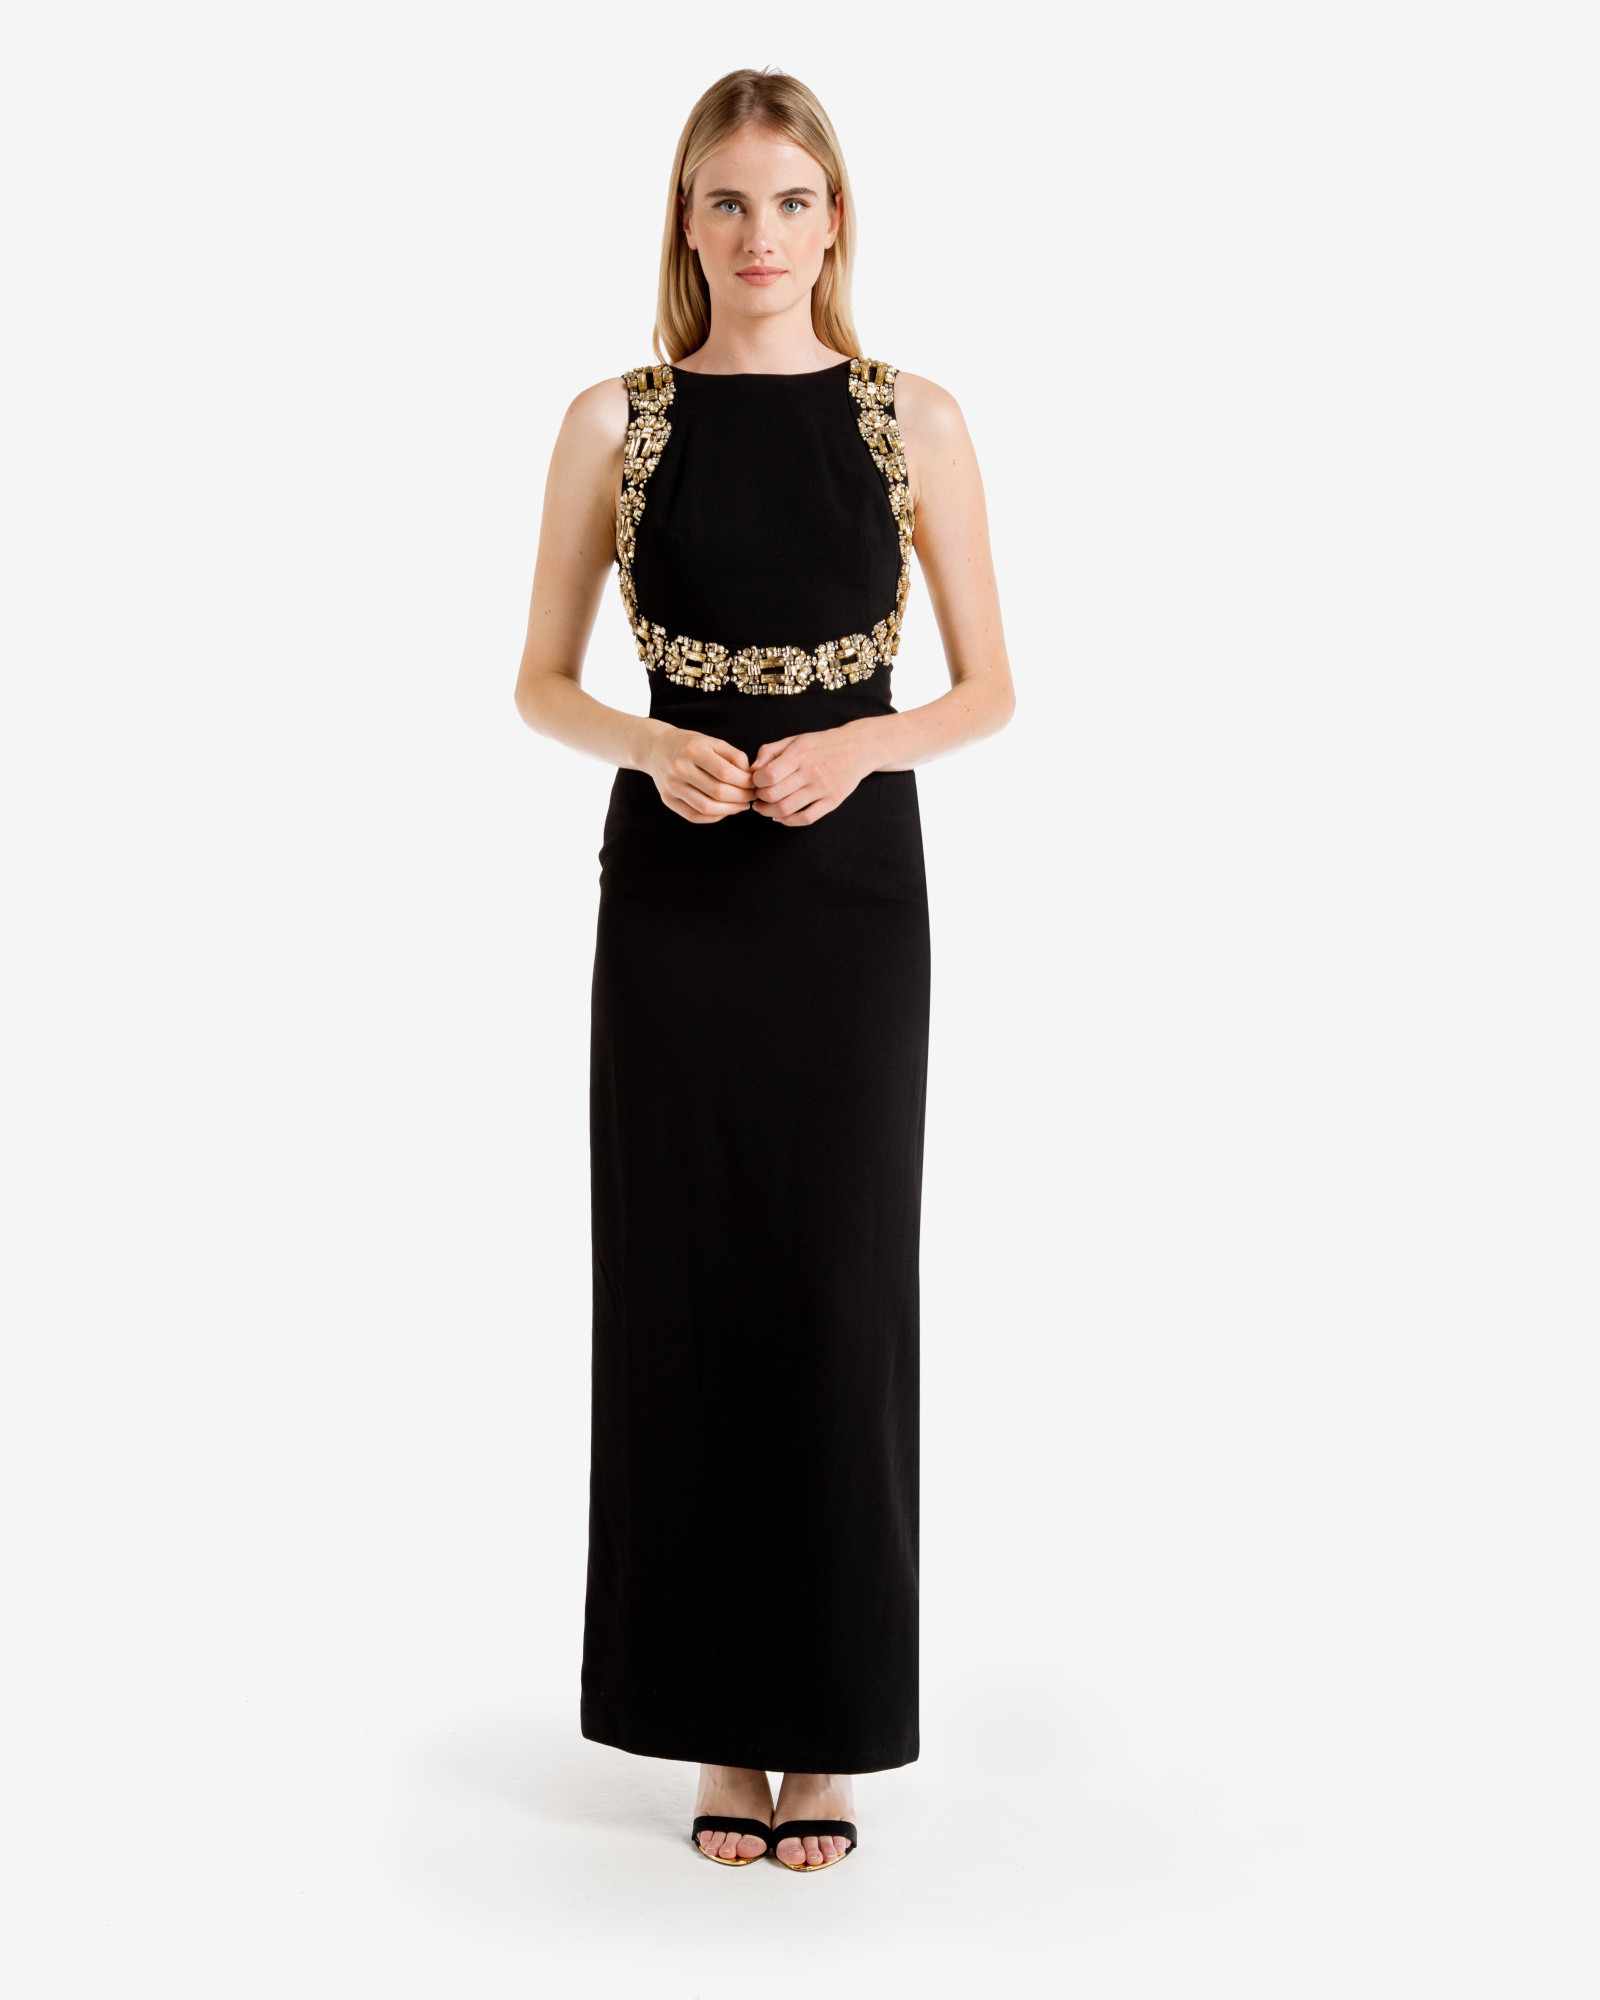 Lyst - Ted baker Embellished Open Back Maxi Dress in Black